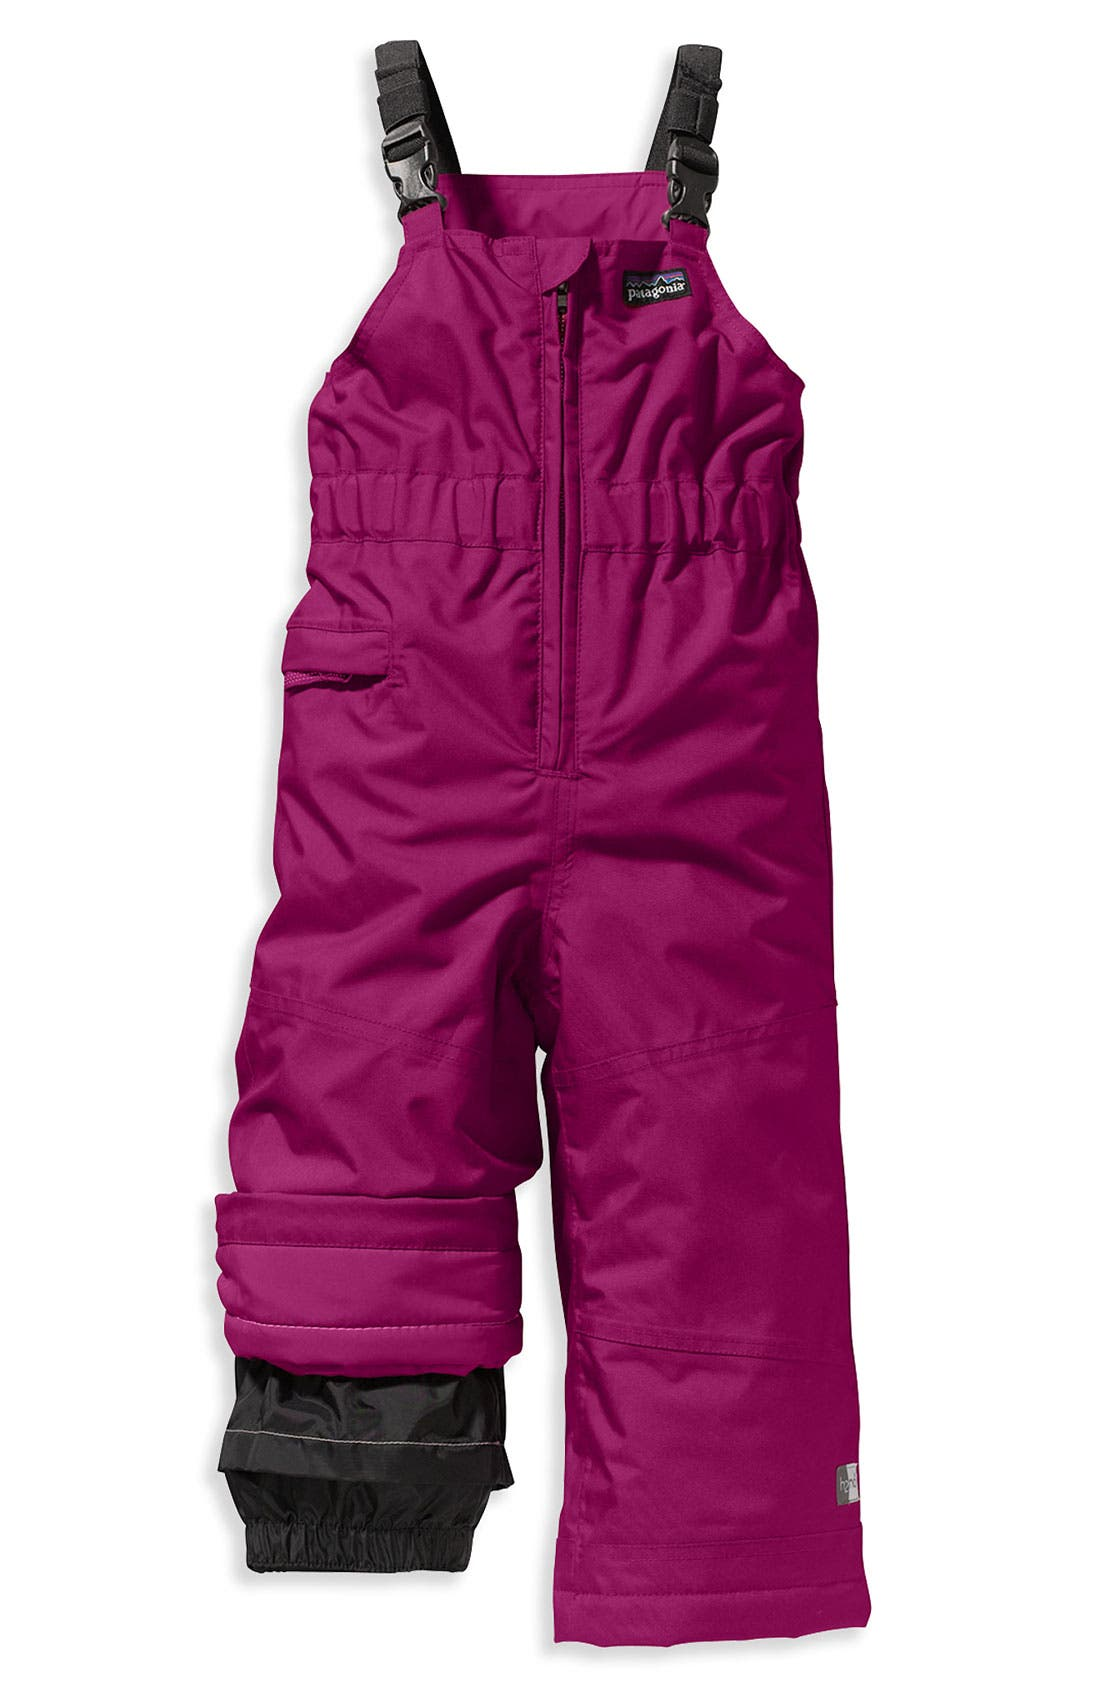 PATAGONIA,                             'Snow-Daze' Bib,                             Alternate thumbnail 2, color,                             650